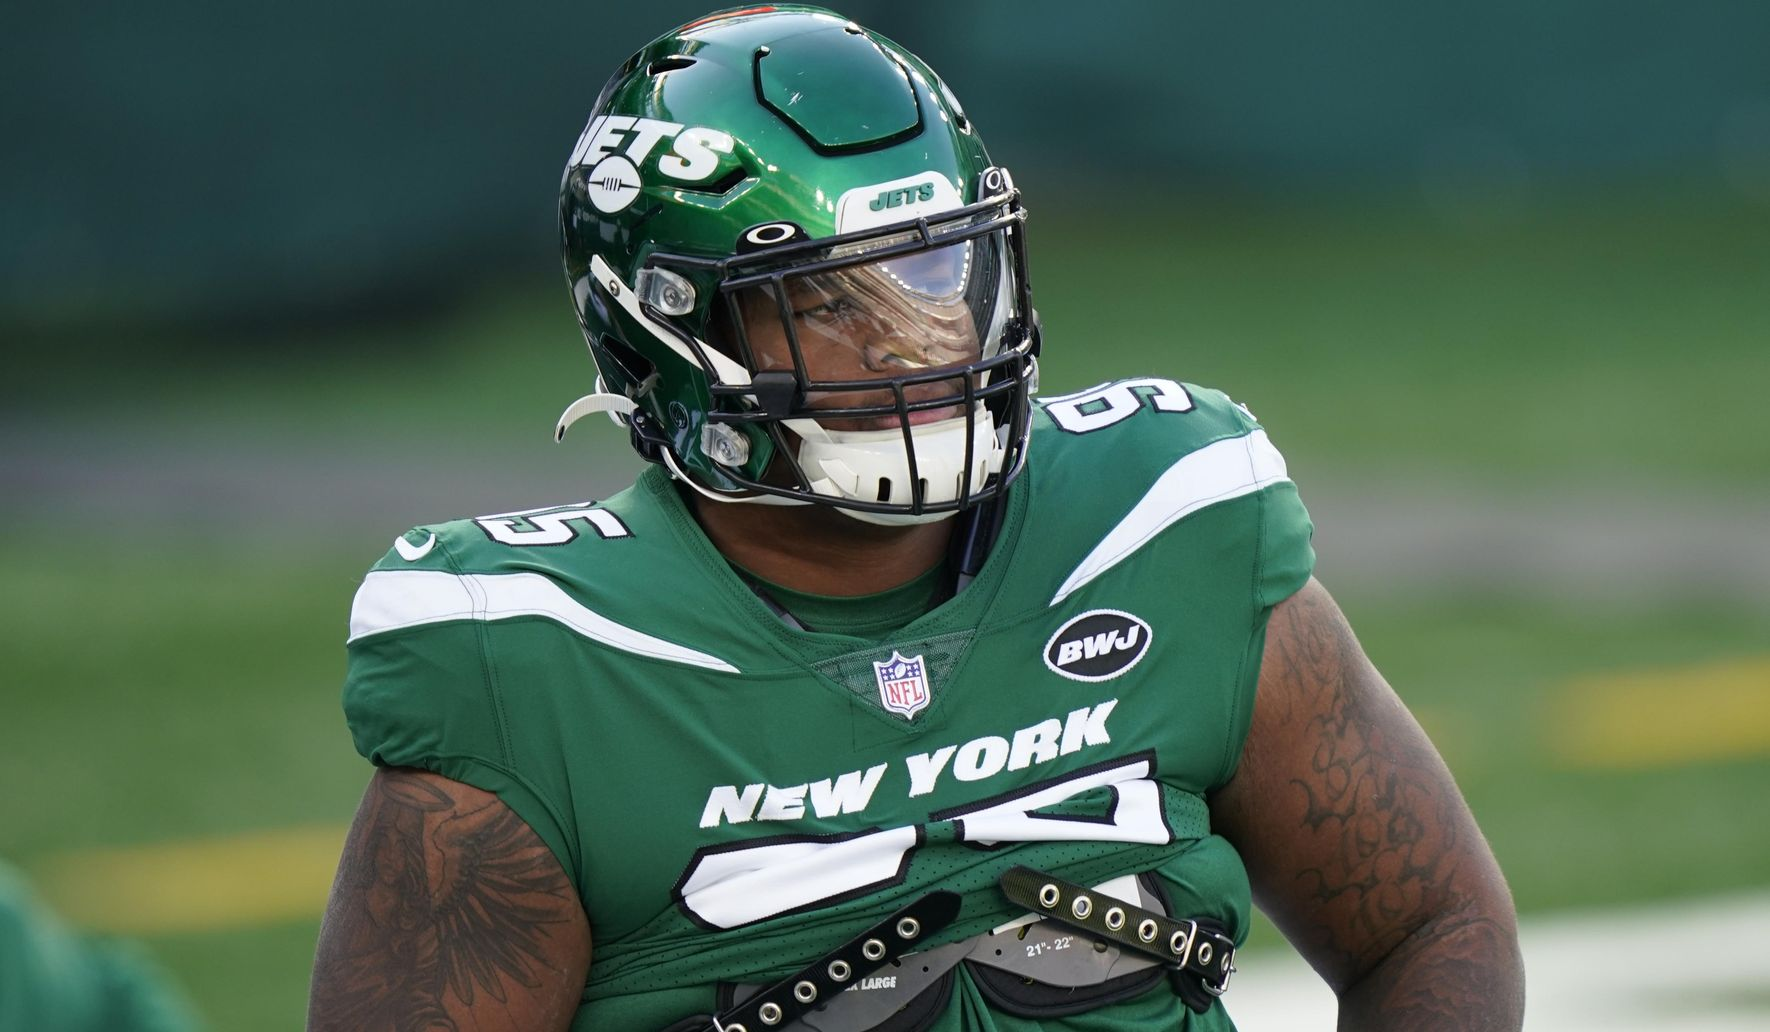 Jets_williams_out_football_75145_c0-183-4369-2730_s1770x1032